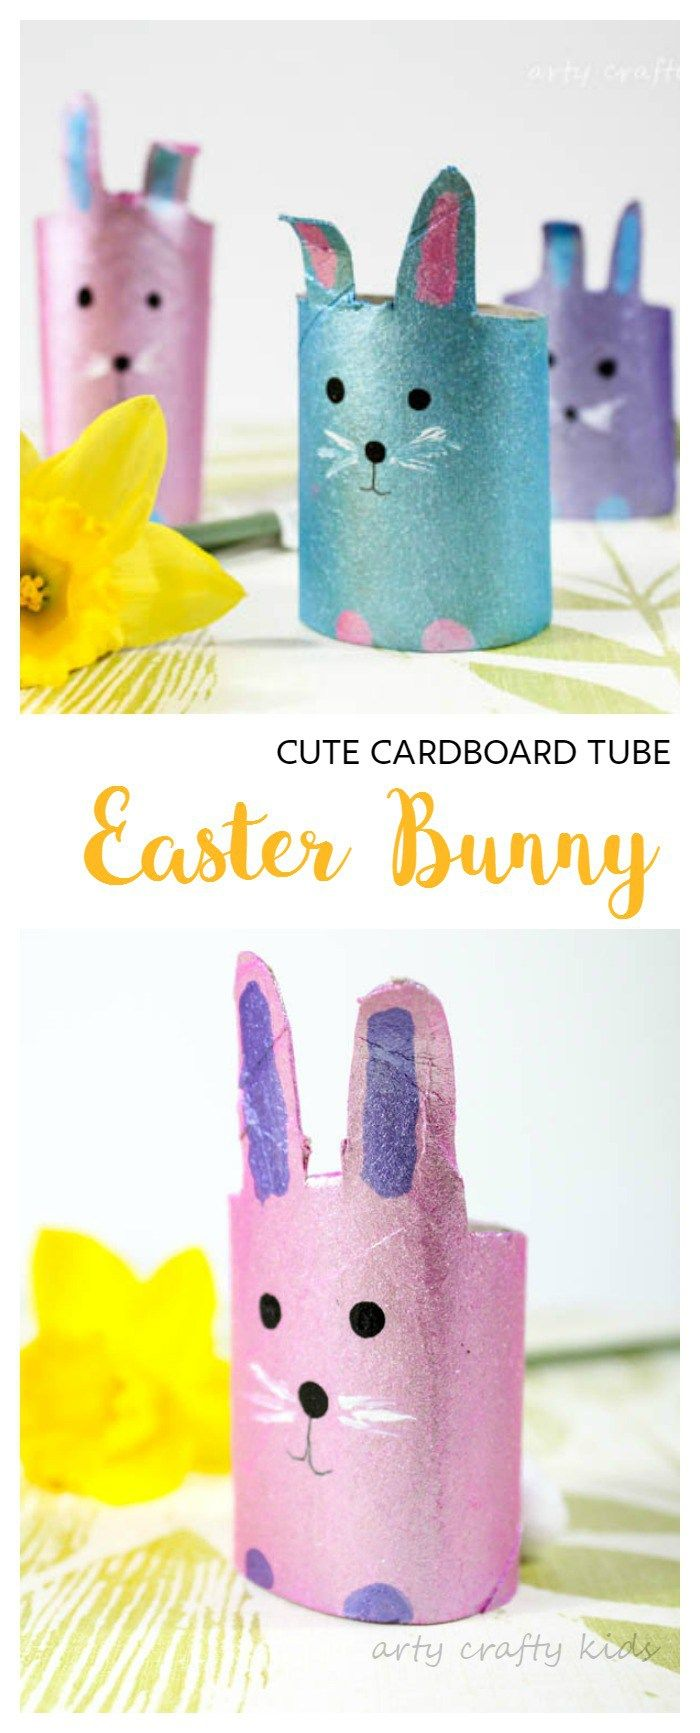 21 fun and creative easter crafts for kids homelovr for Where to buy cardboard tubes for craft